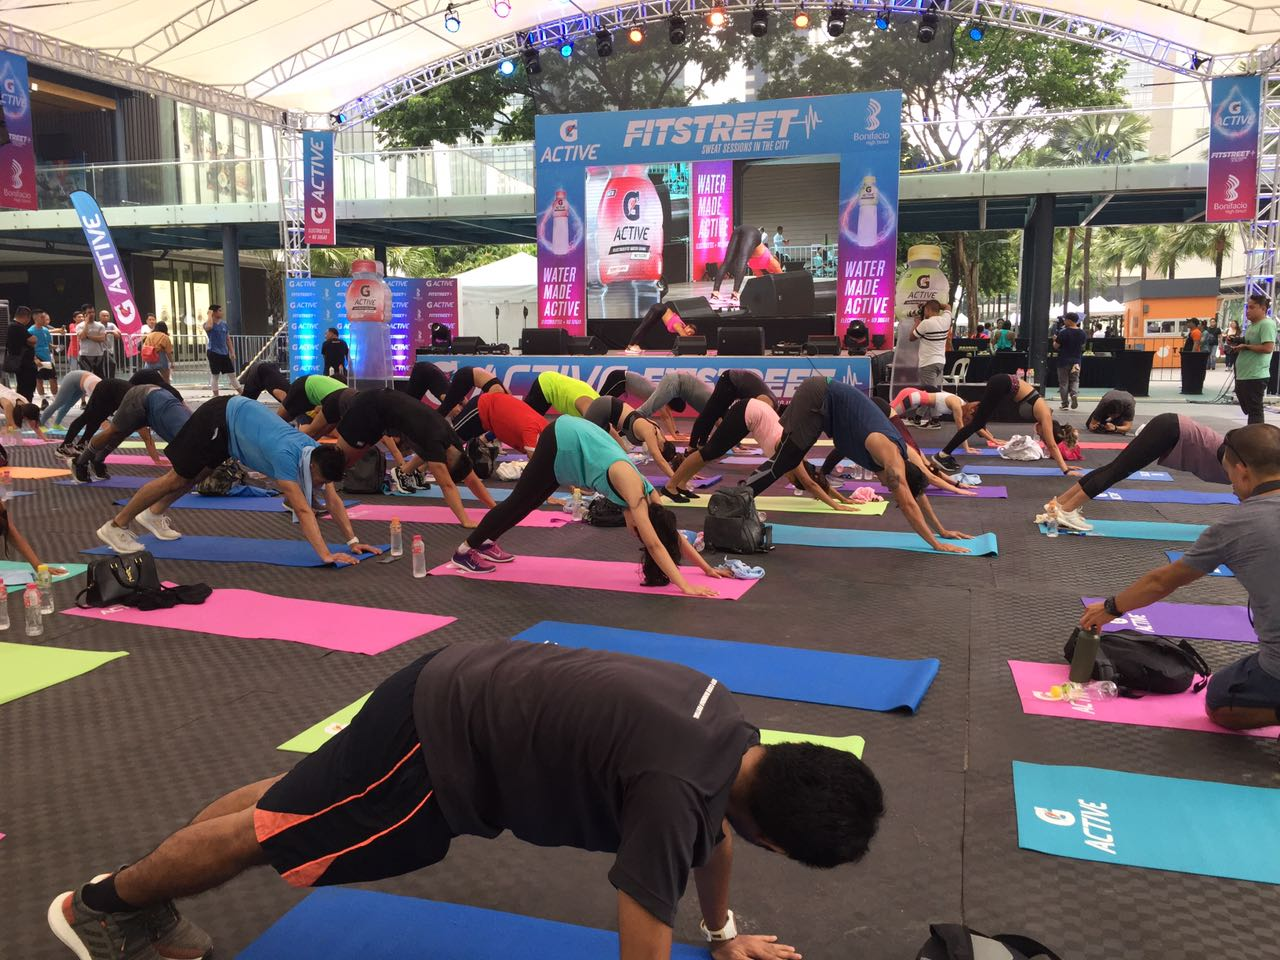 The G Active workout party with celebrities and guests at Fitstreet 2019.